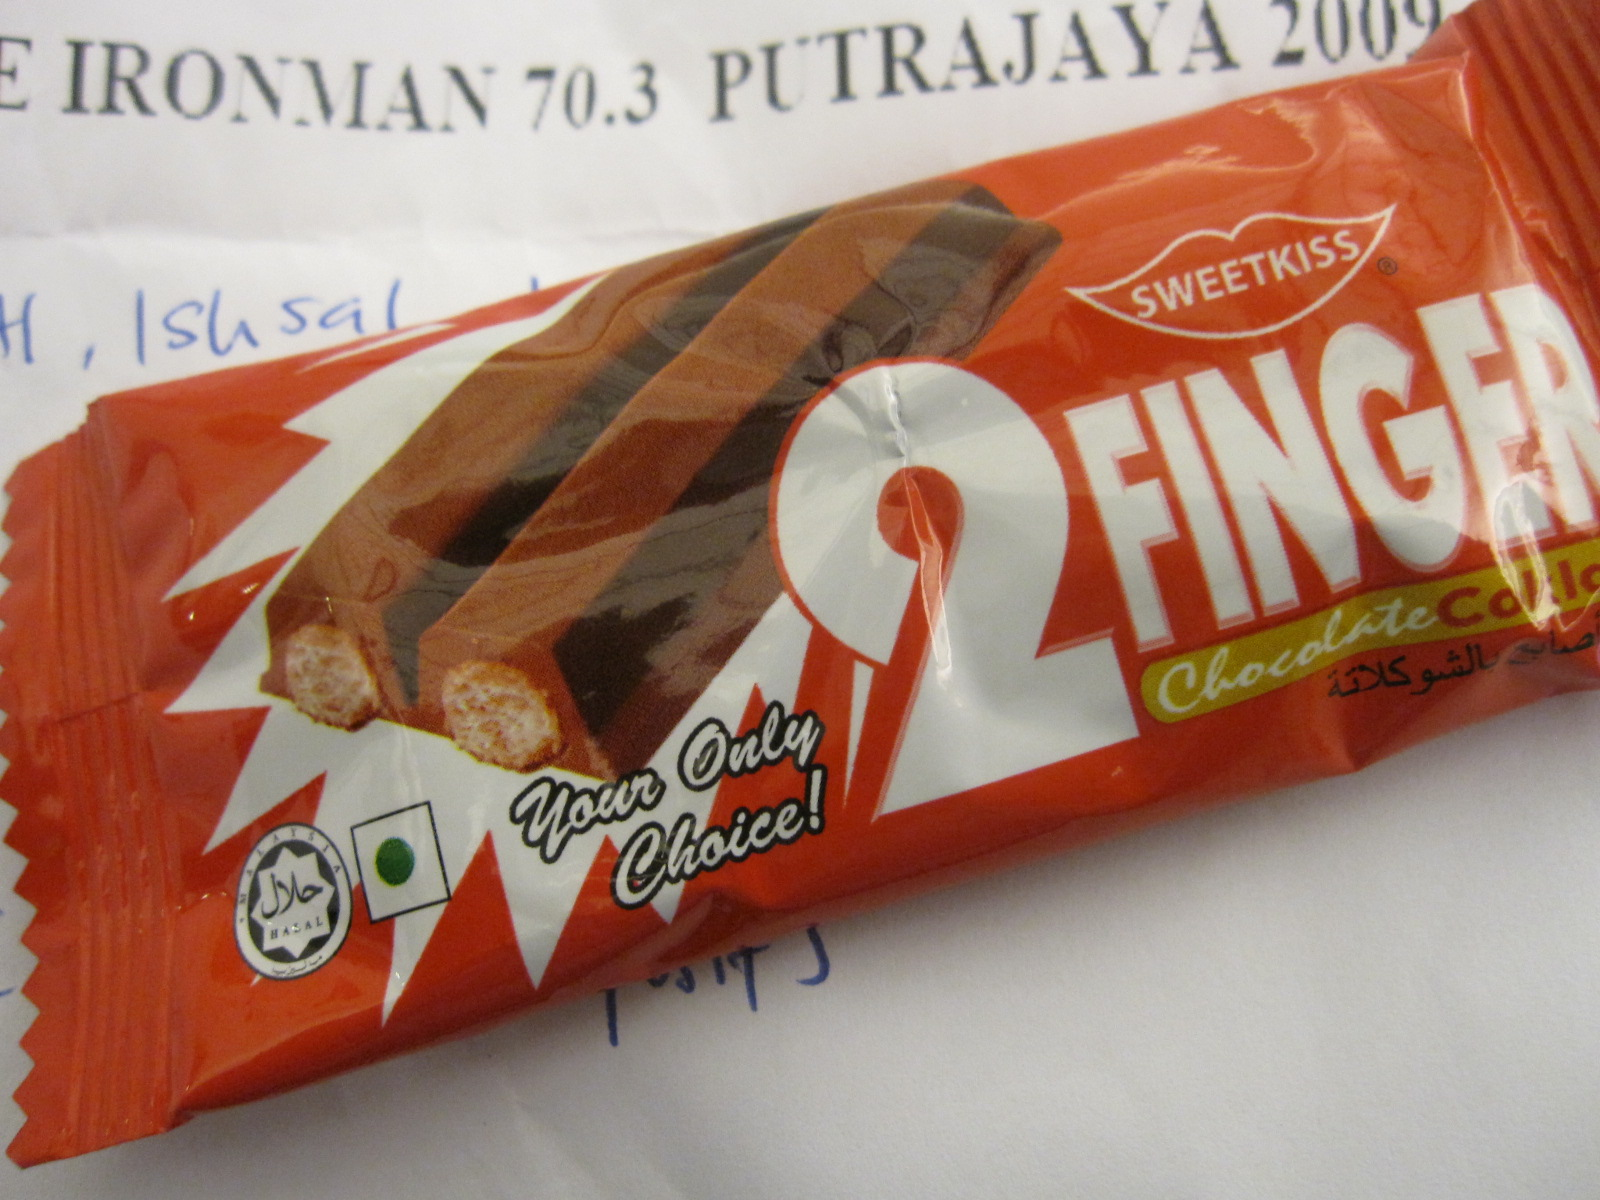 The chocolate bar from the race kit